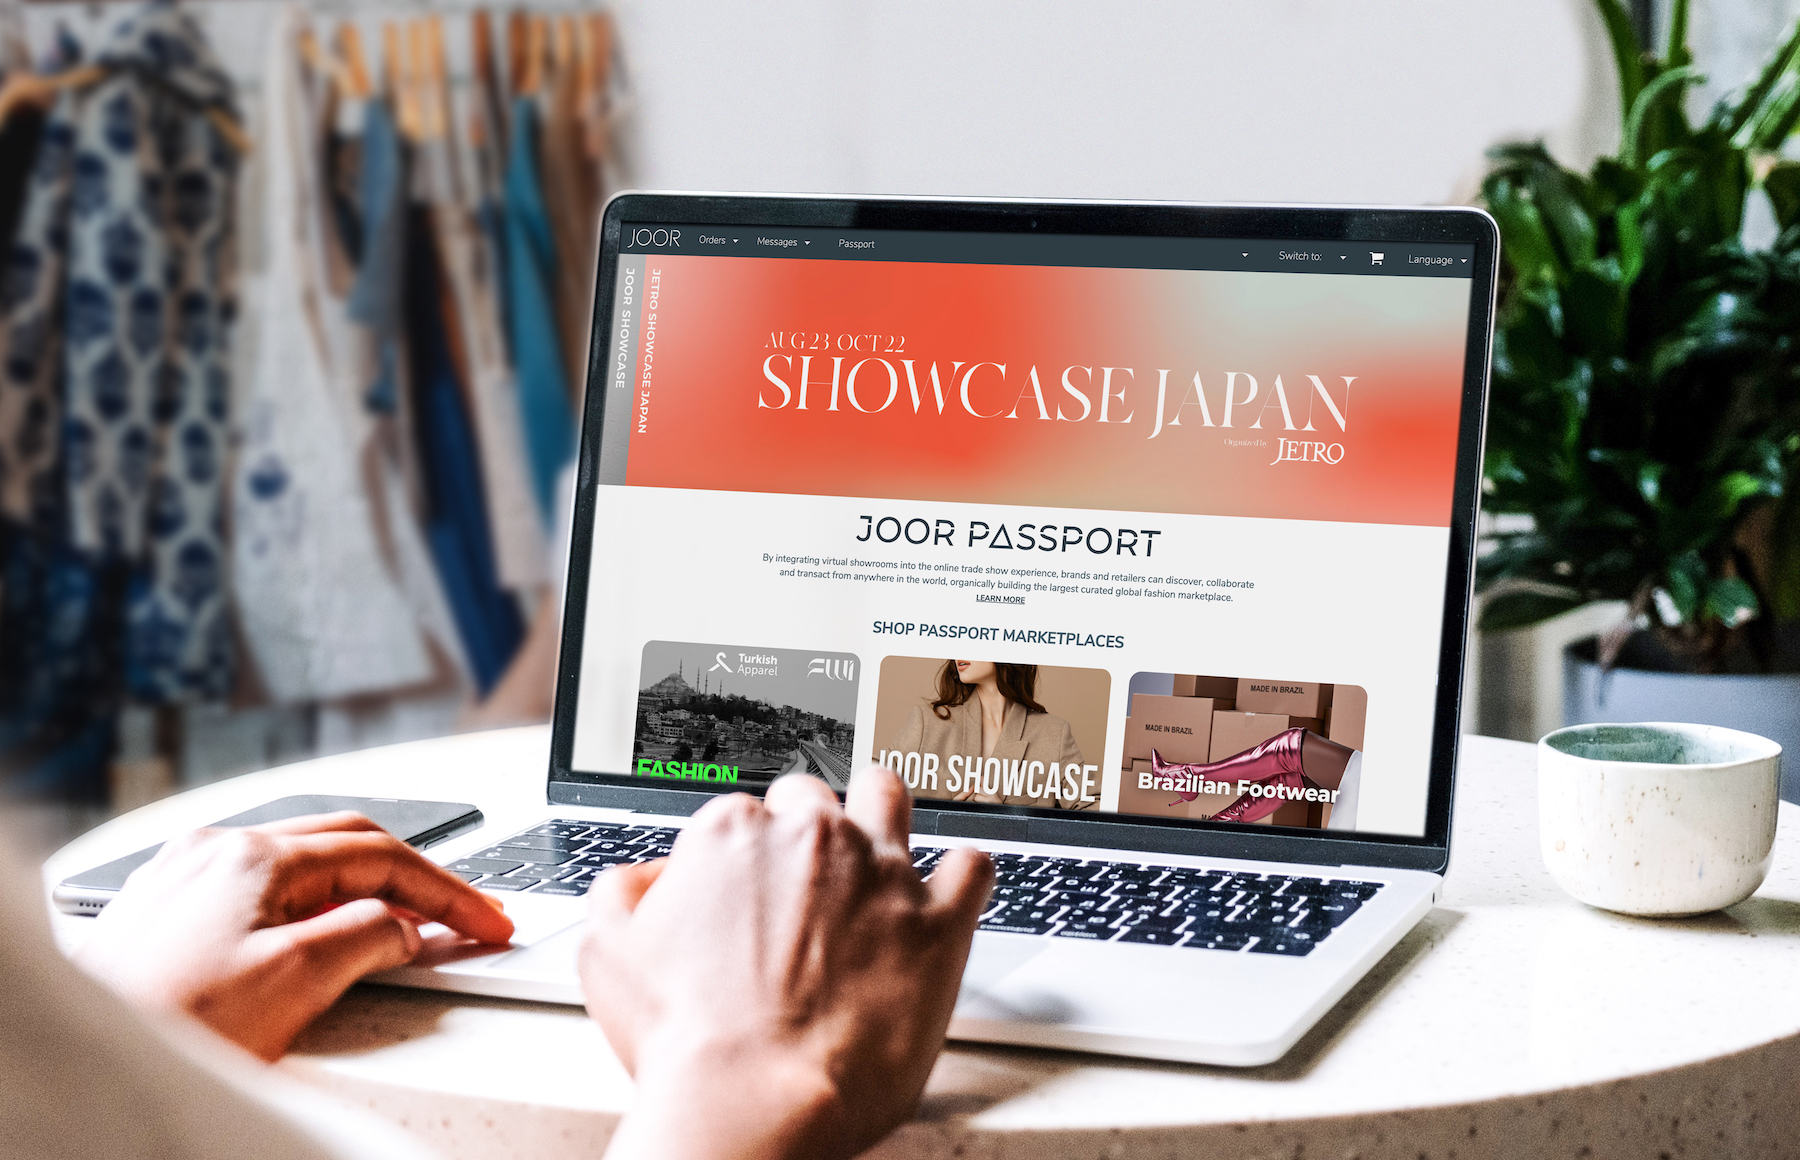 In partnership with The Japan External Trade Organization (JETRO), JOOR is presenting Showcase Japan from August 23 to October 22, 2021, marking the second iteration of the virtual fashion trade show.